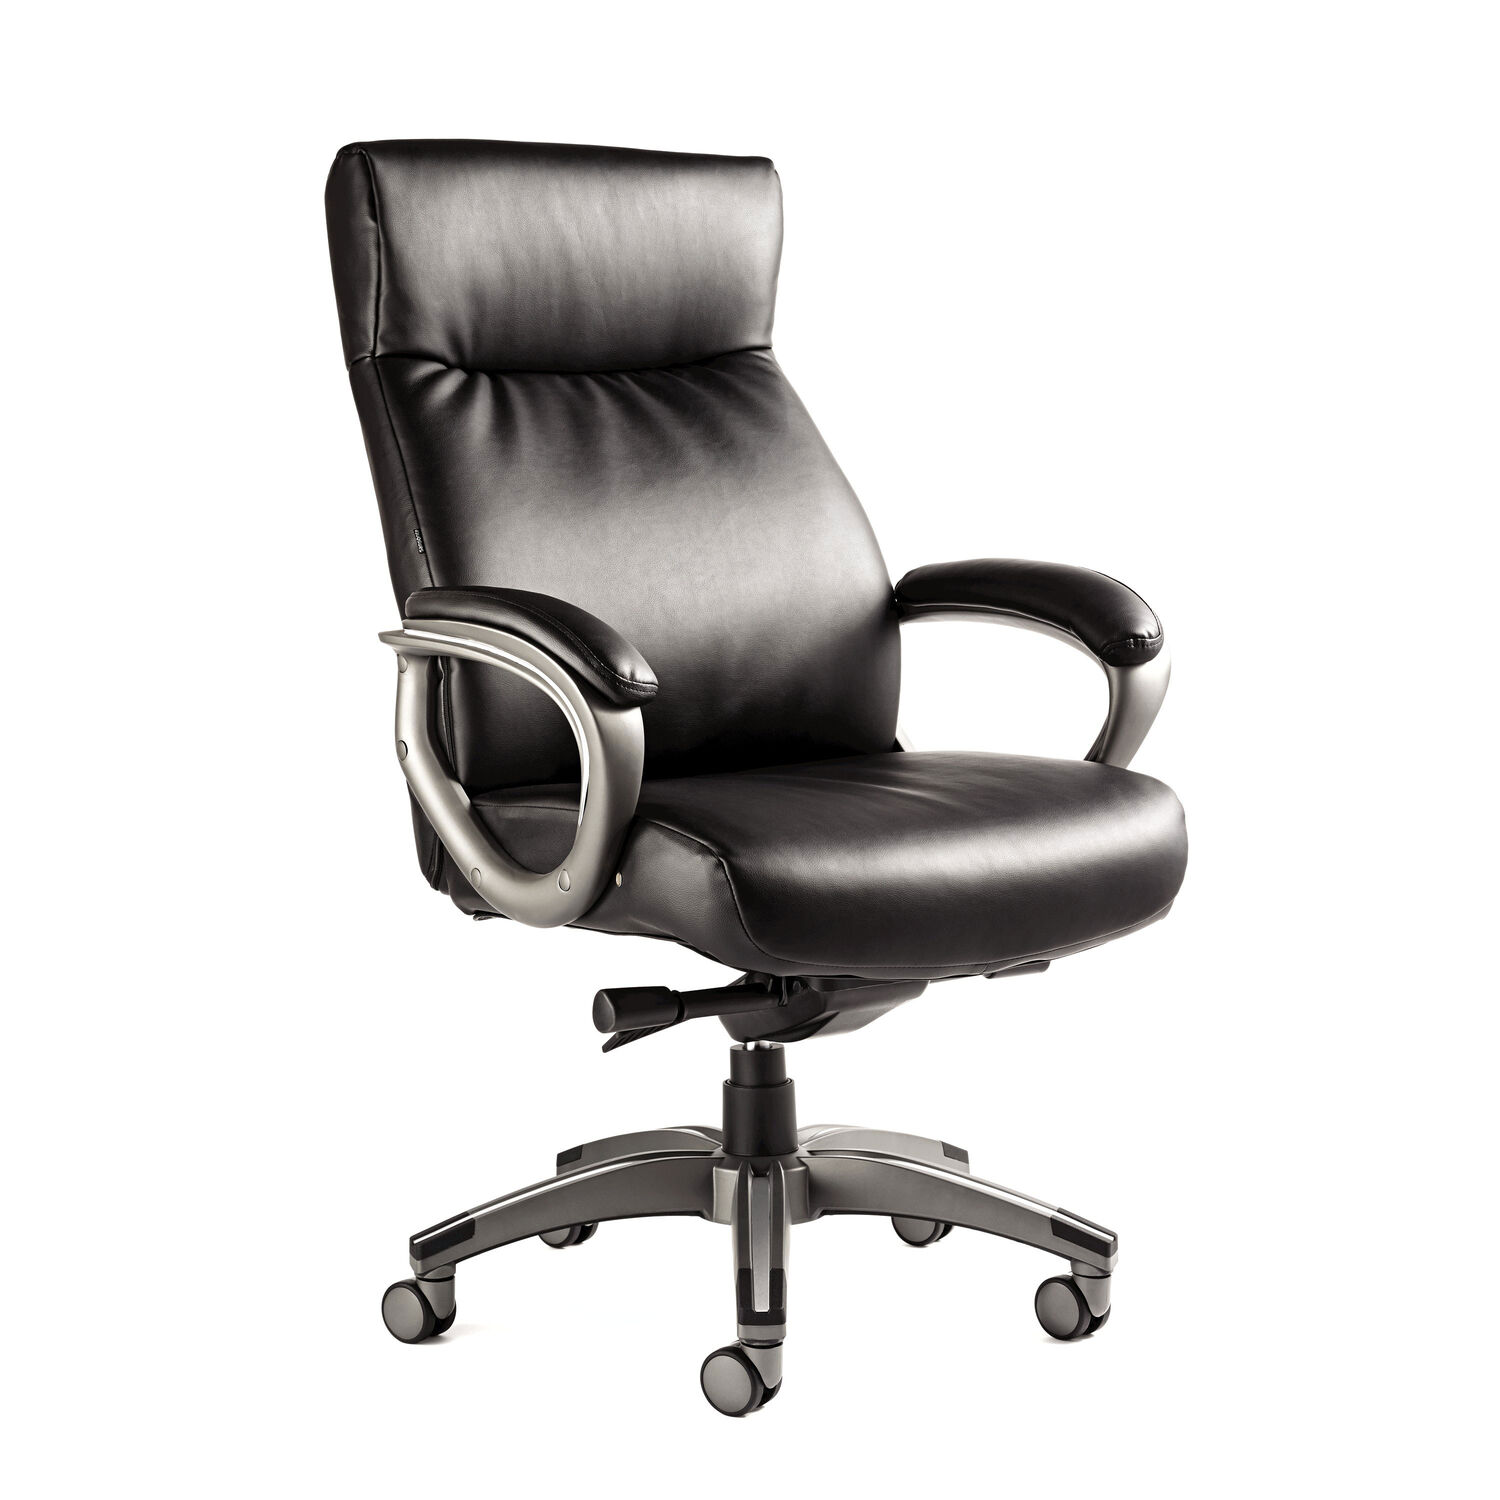 Samsonite Orleans Bonded Leather Chair